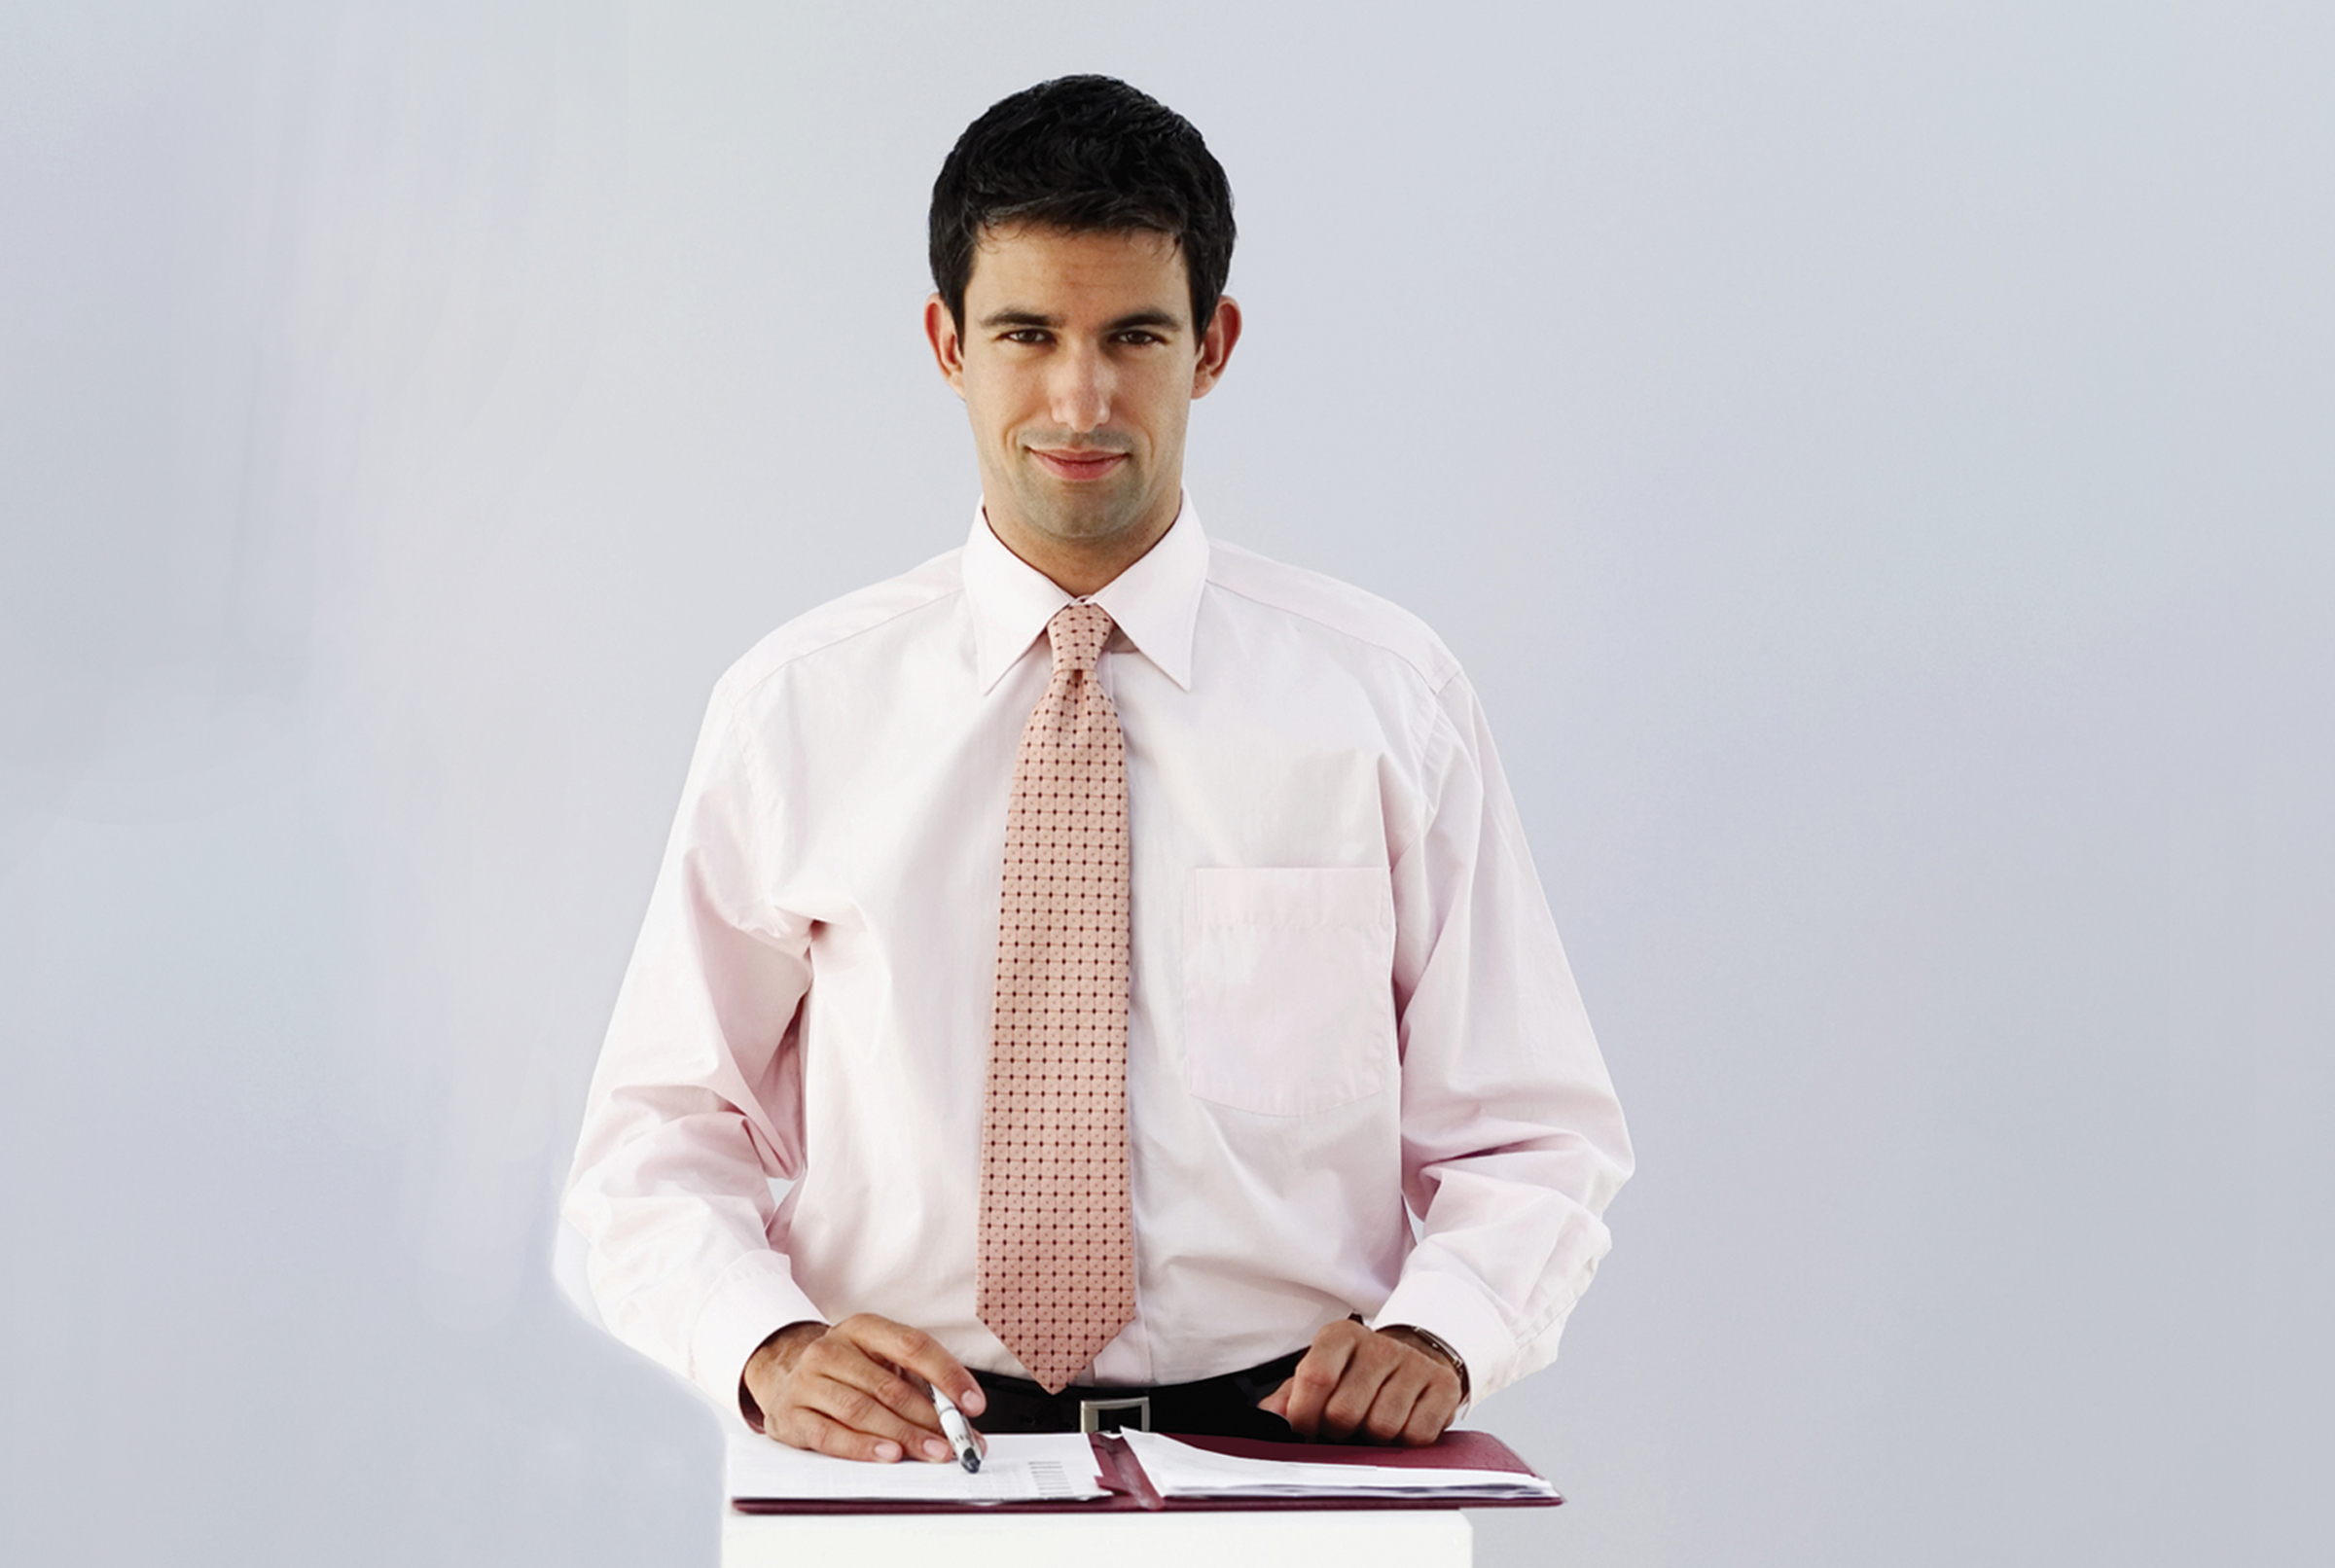 success story - executive leader looking directly into the camera, shirt and tie, with business binder under his hands